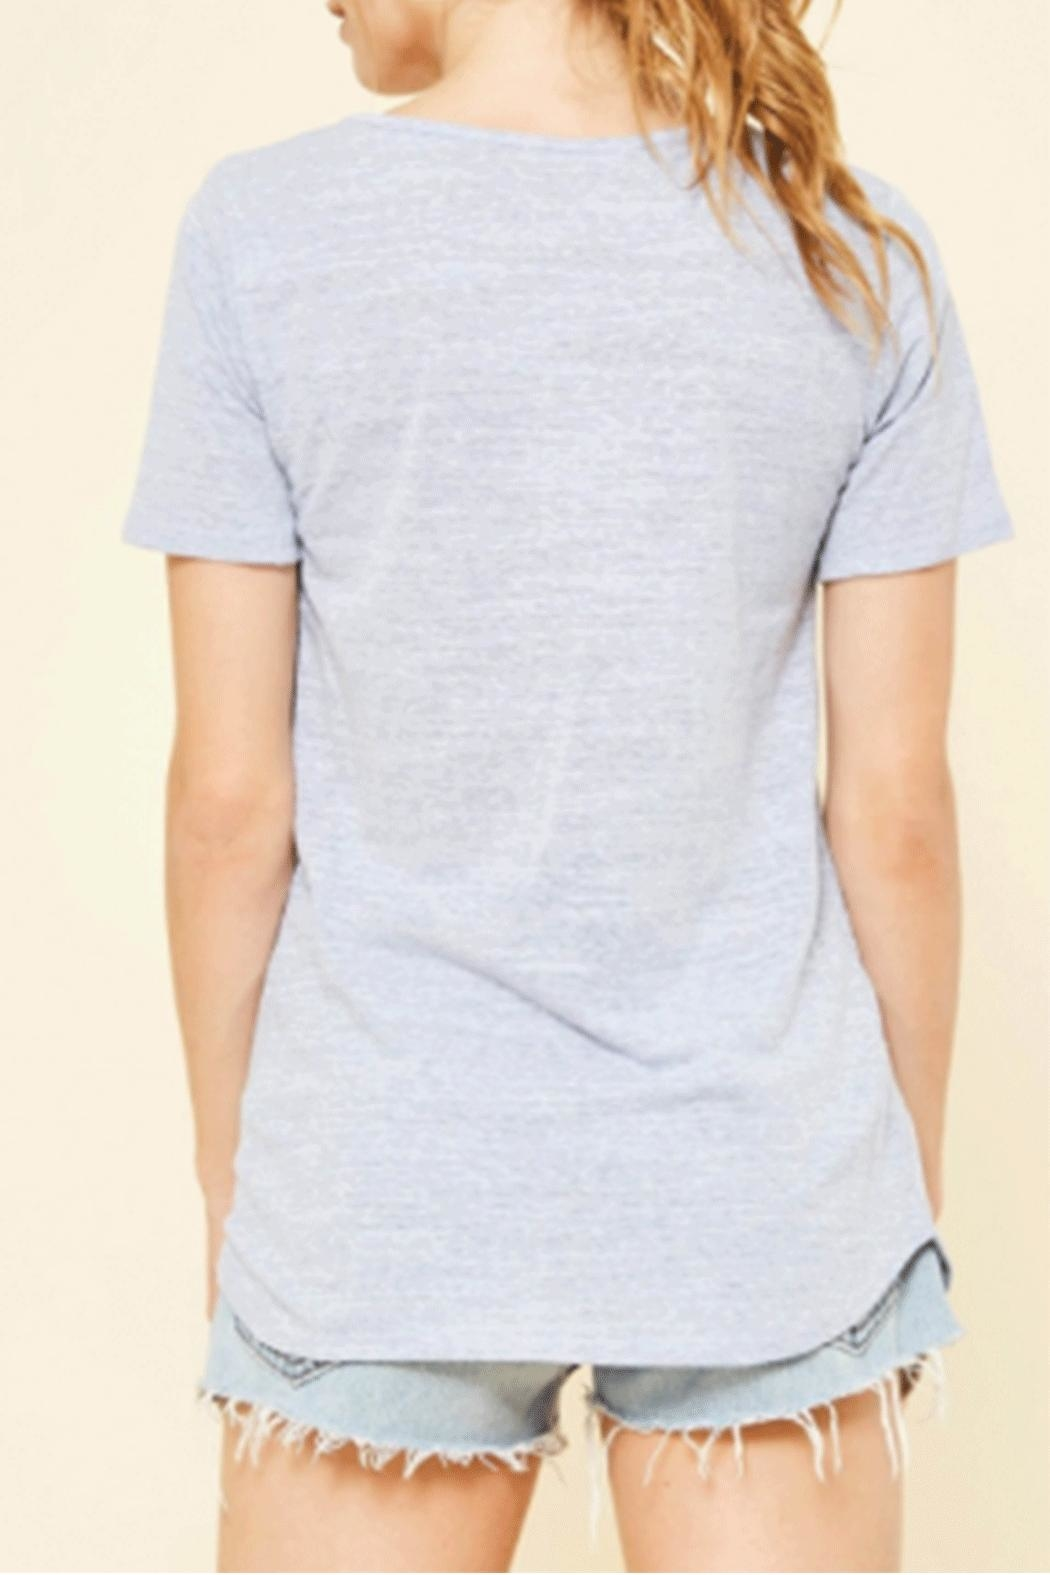 Promesa USA Distressed Criss-Cross Tee - Front Full Image